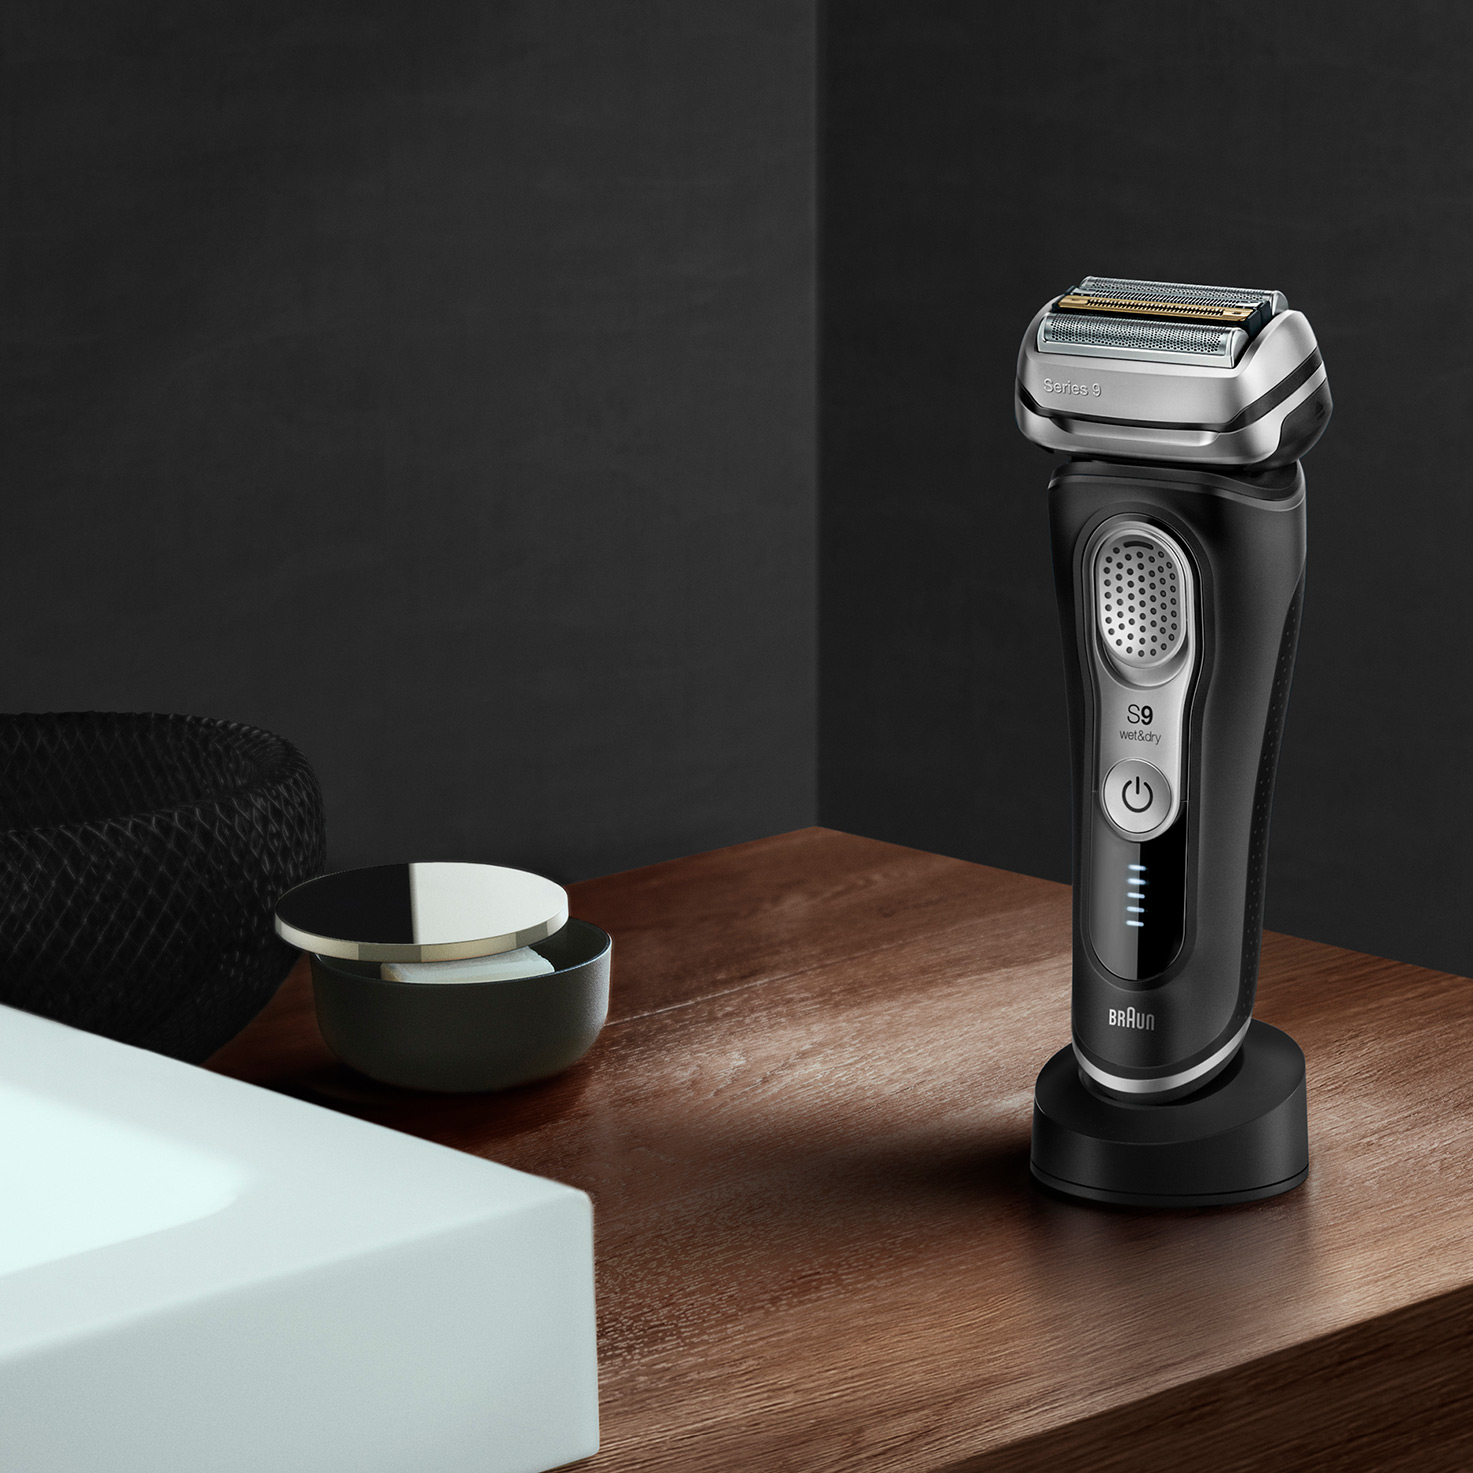 Series 9 9340s shaver in charging stand